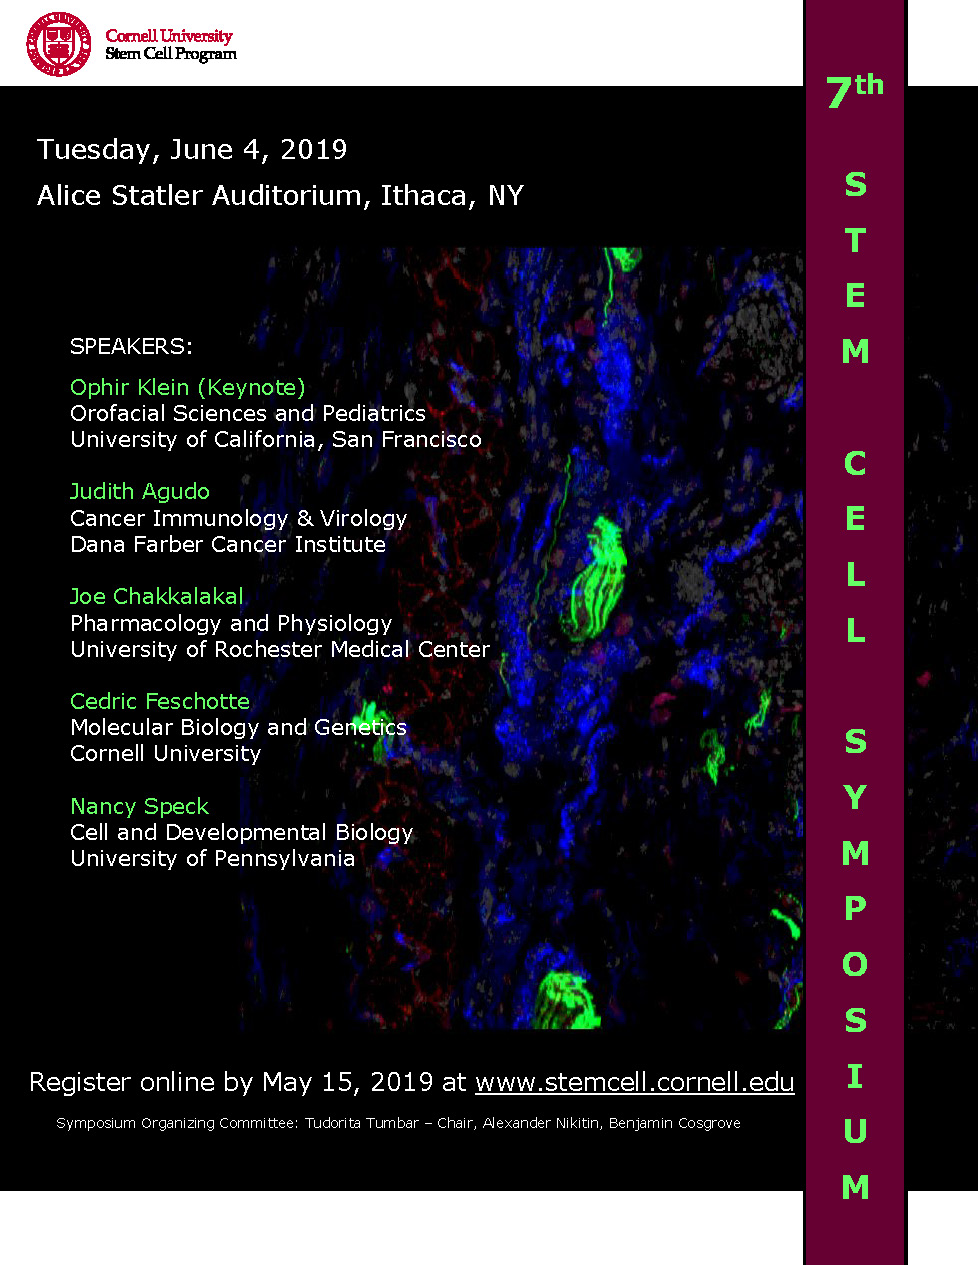 7th Stem Cell Symposium poster